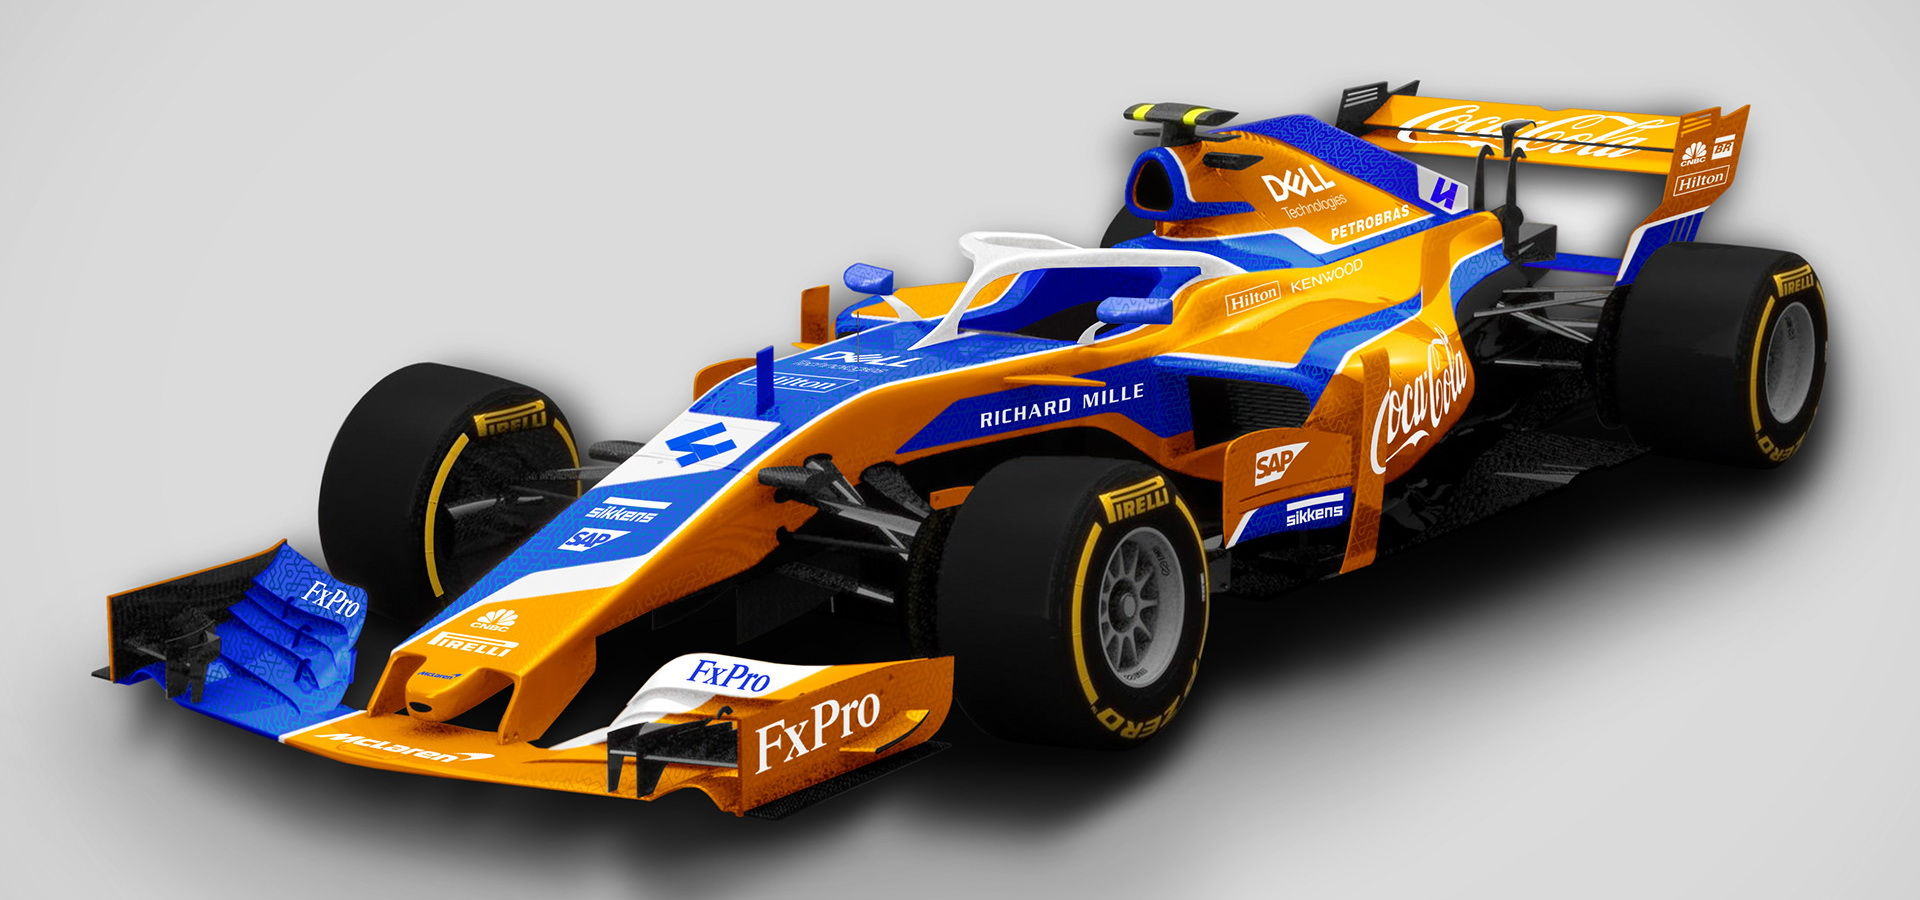 Check Out These Awesome Alternate F1 Liveries For 2019 ...